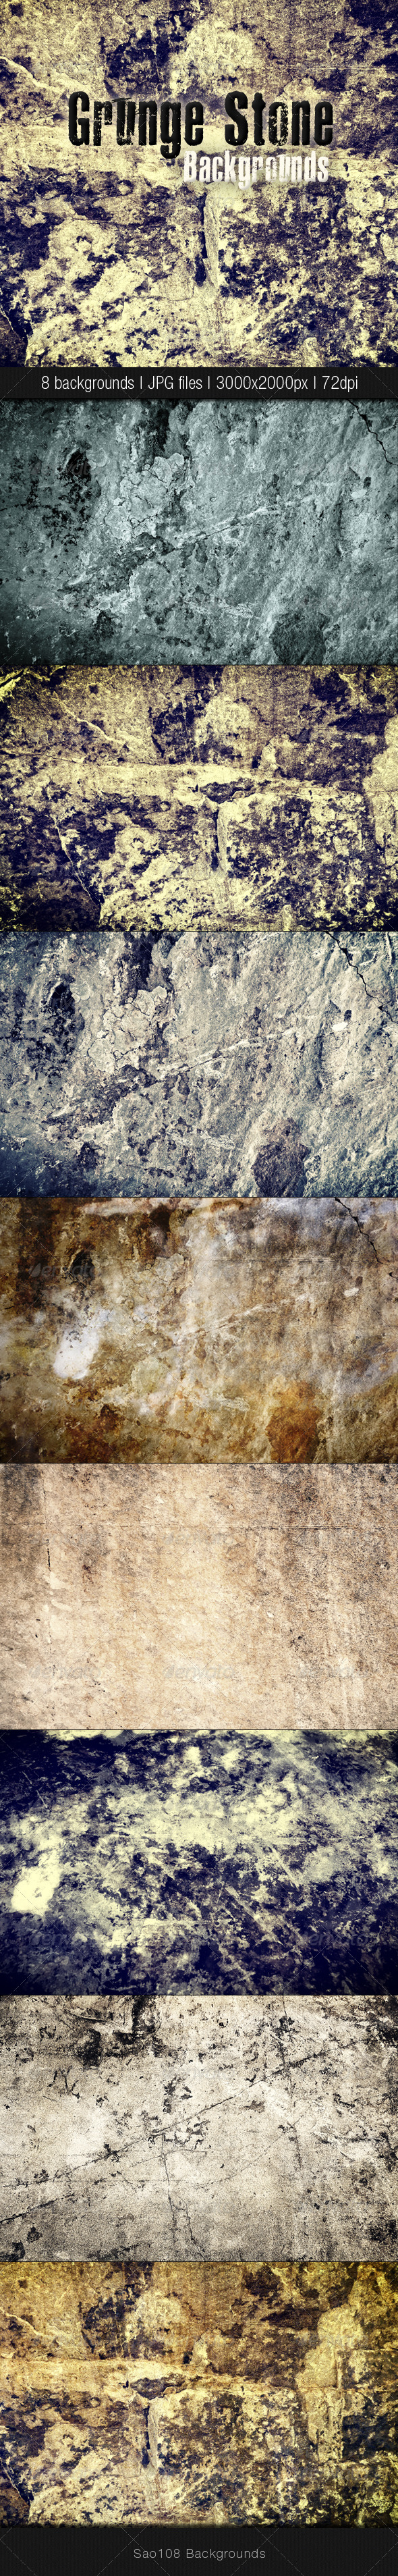 GraphicRiver Grunge stone backgrounds 3518413